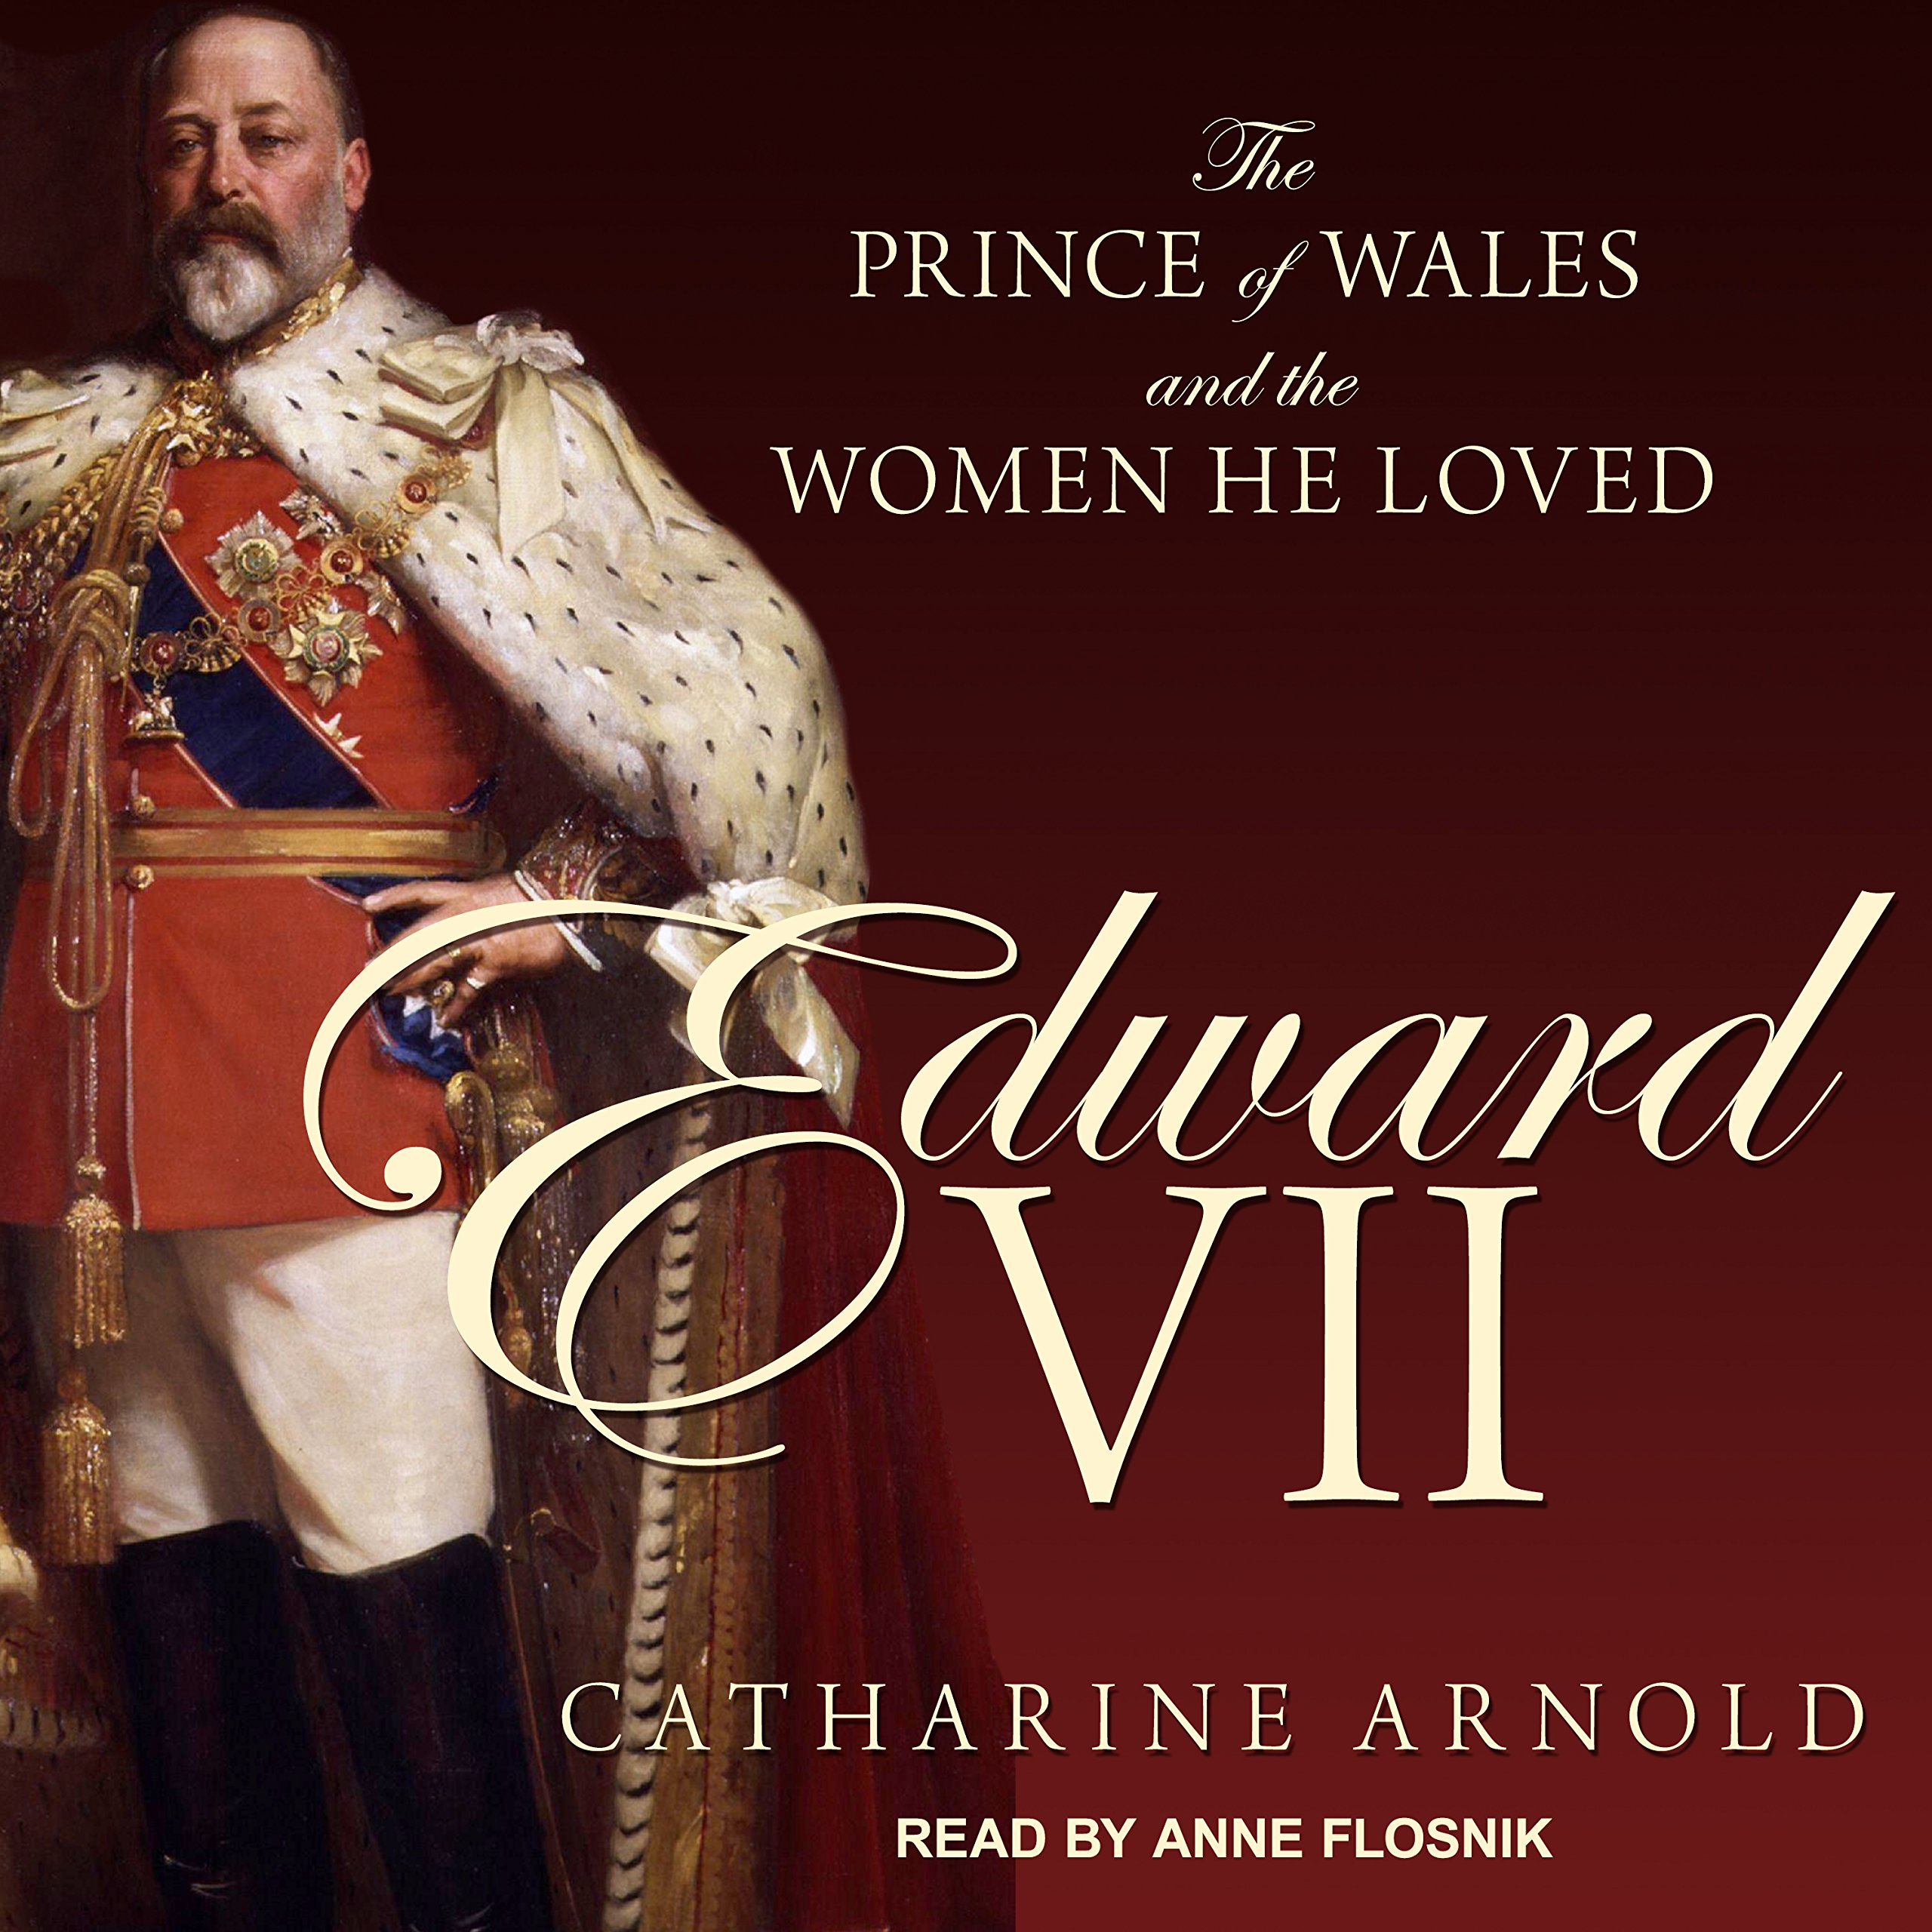 Edward VII: The Prince of Wales and the Women He Loved: Amazon.co.uk:  Catharine Arnold, Anne T. Flosnik: 9781541469112: Books